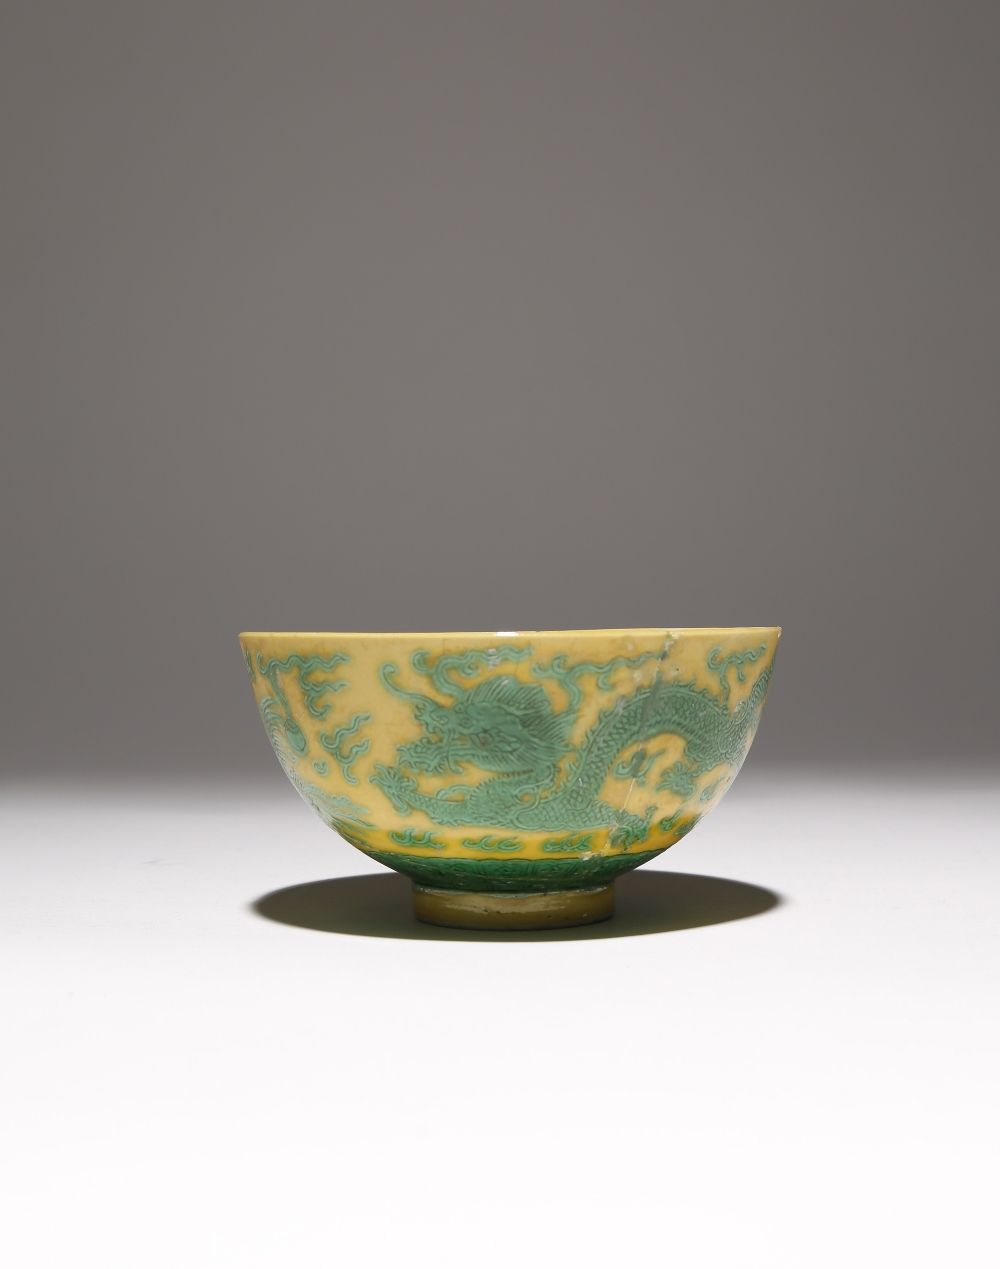 A CHINESE IMPERIAL GREEN-ENAMELLED YELLOW-GROUND 'DRAGON AND PHOENIX' BOWL SIX CHARACTER DAOGUANG